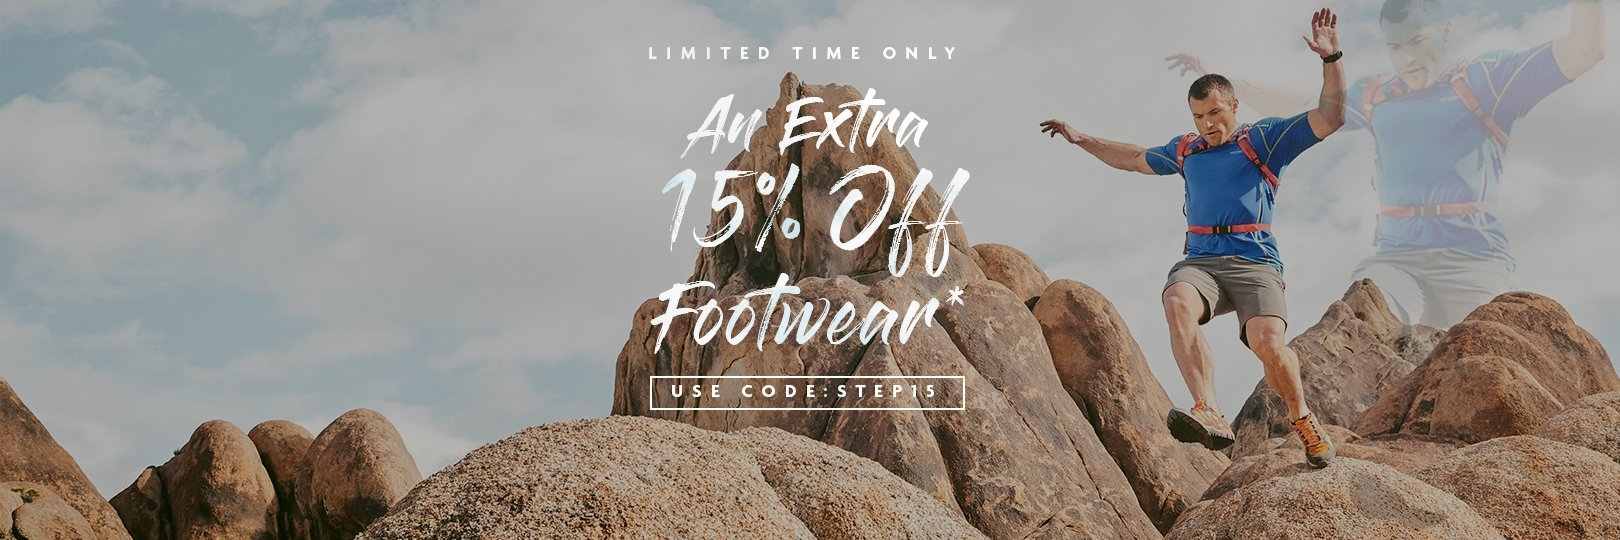 An extra 15% off Footwear